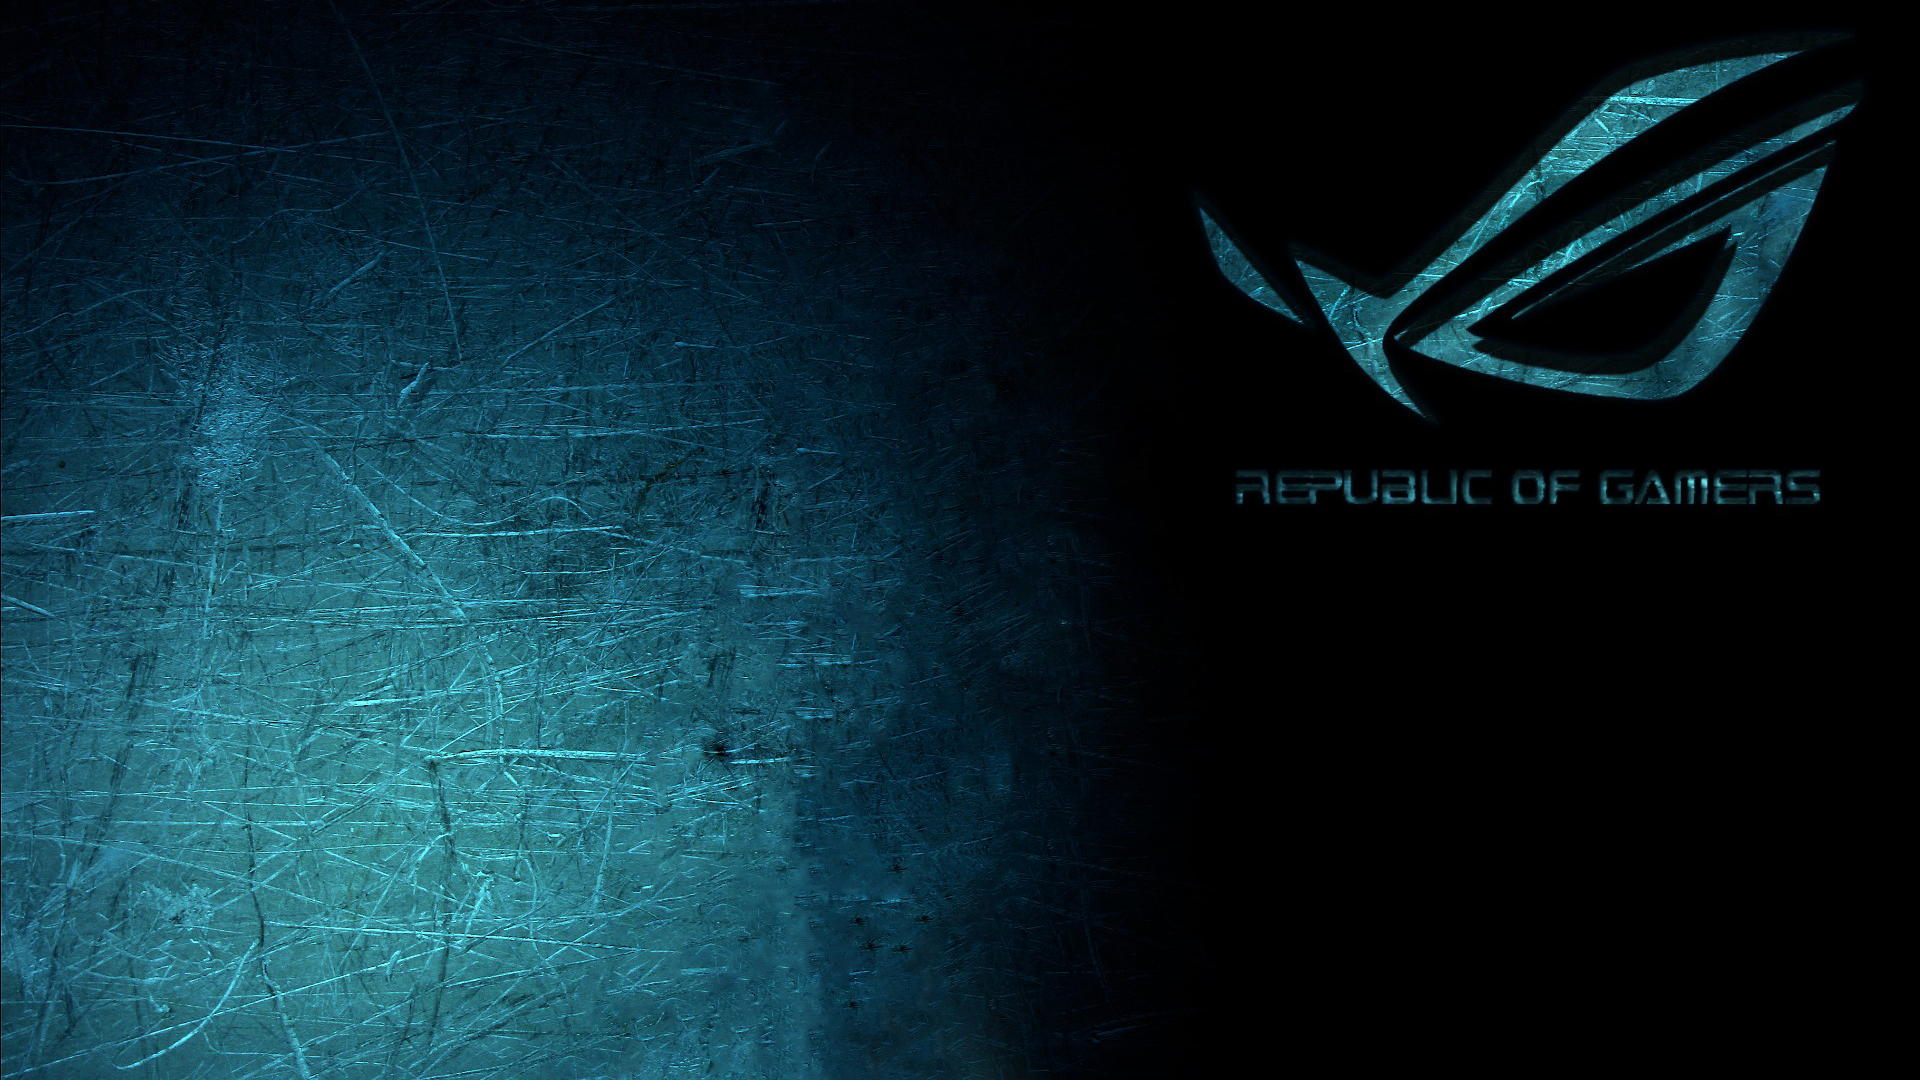 Gaming Wallpapers HD 1920x1080